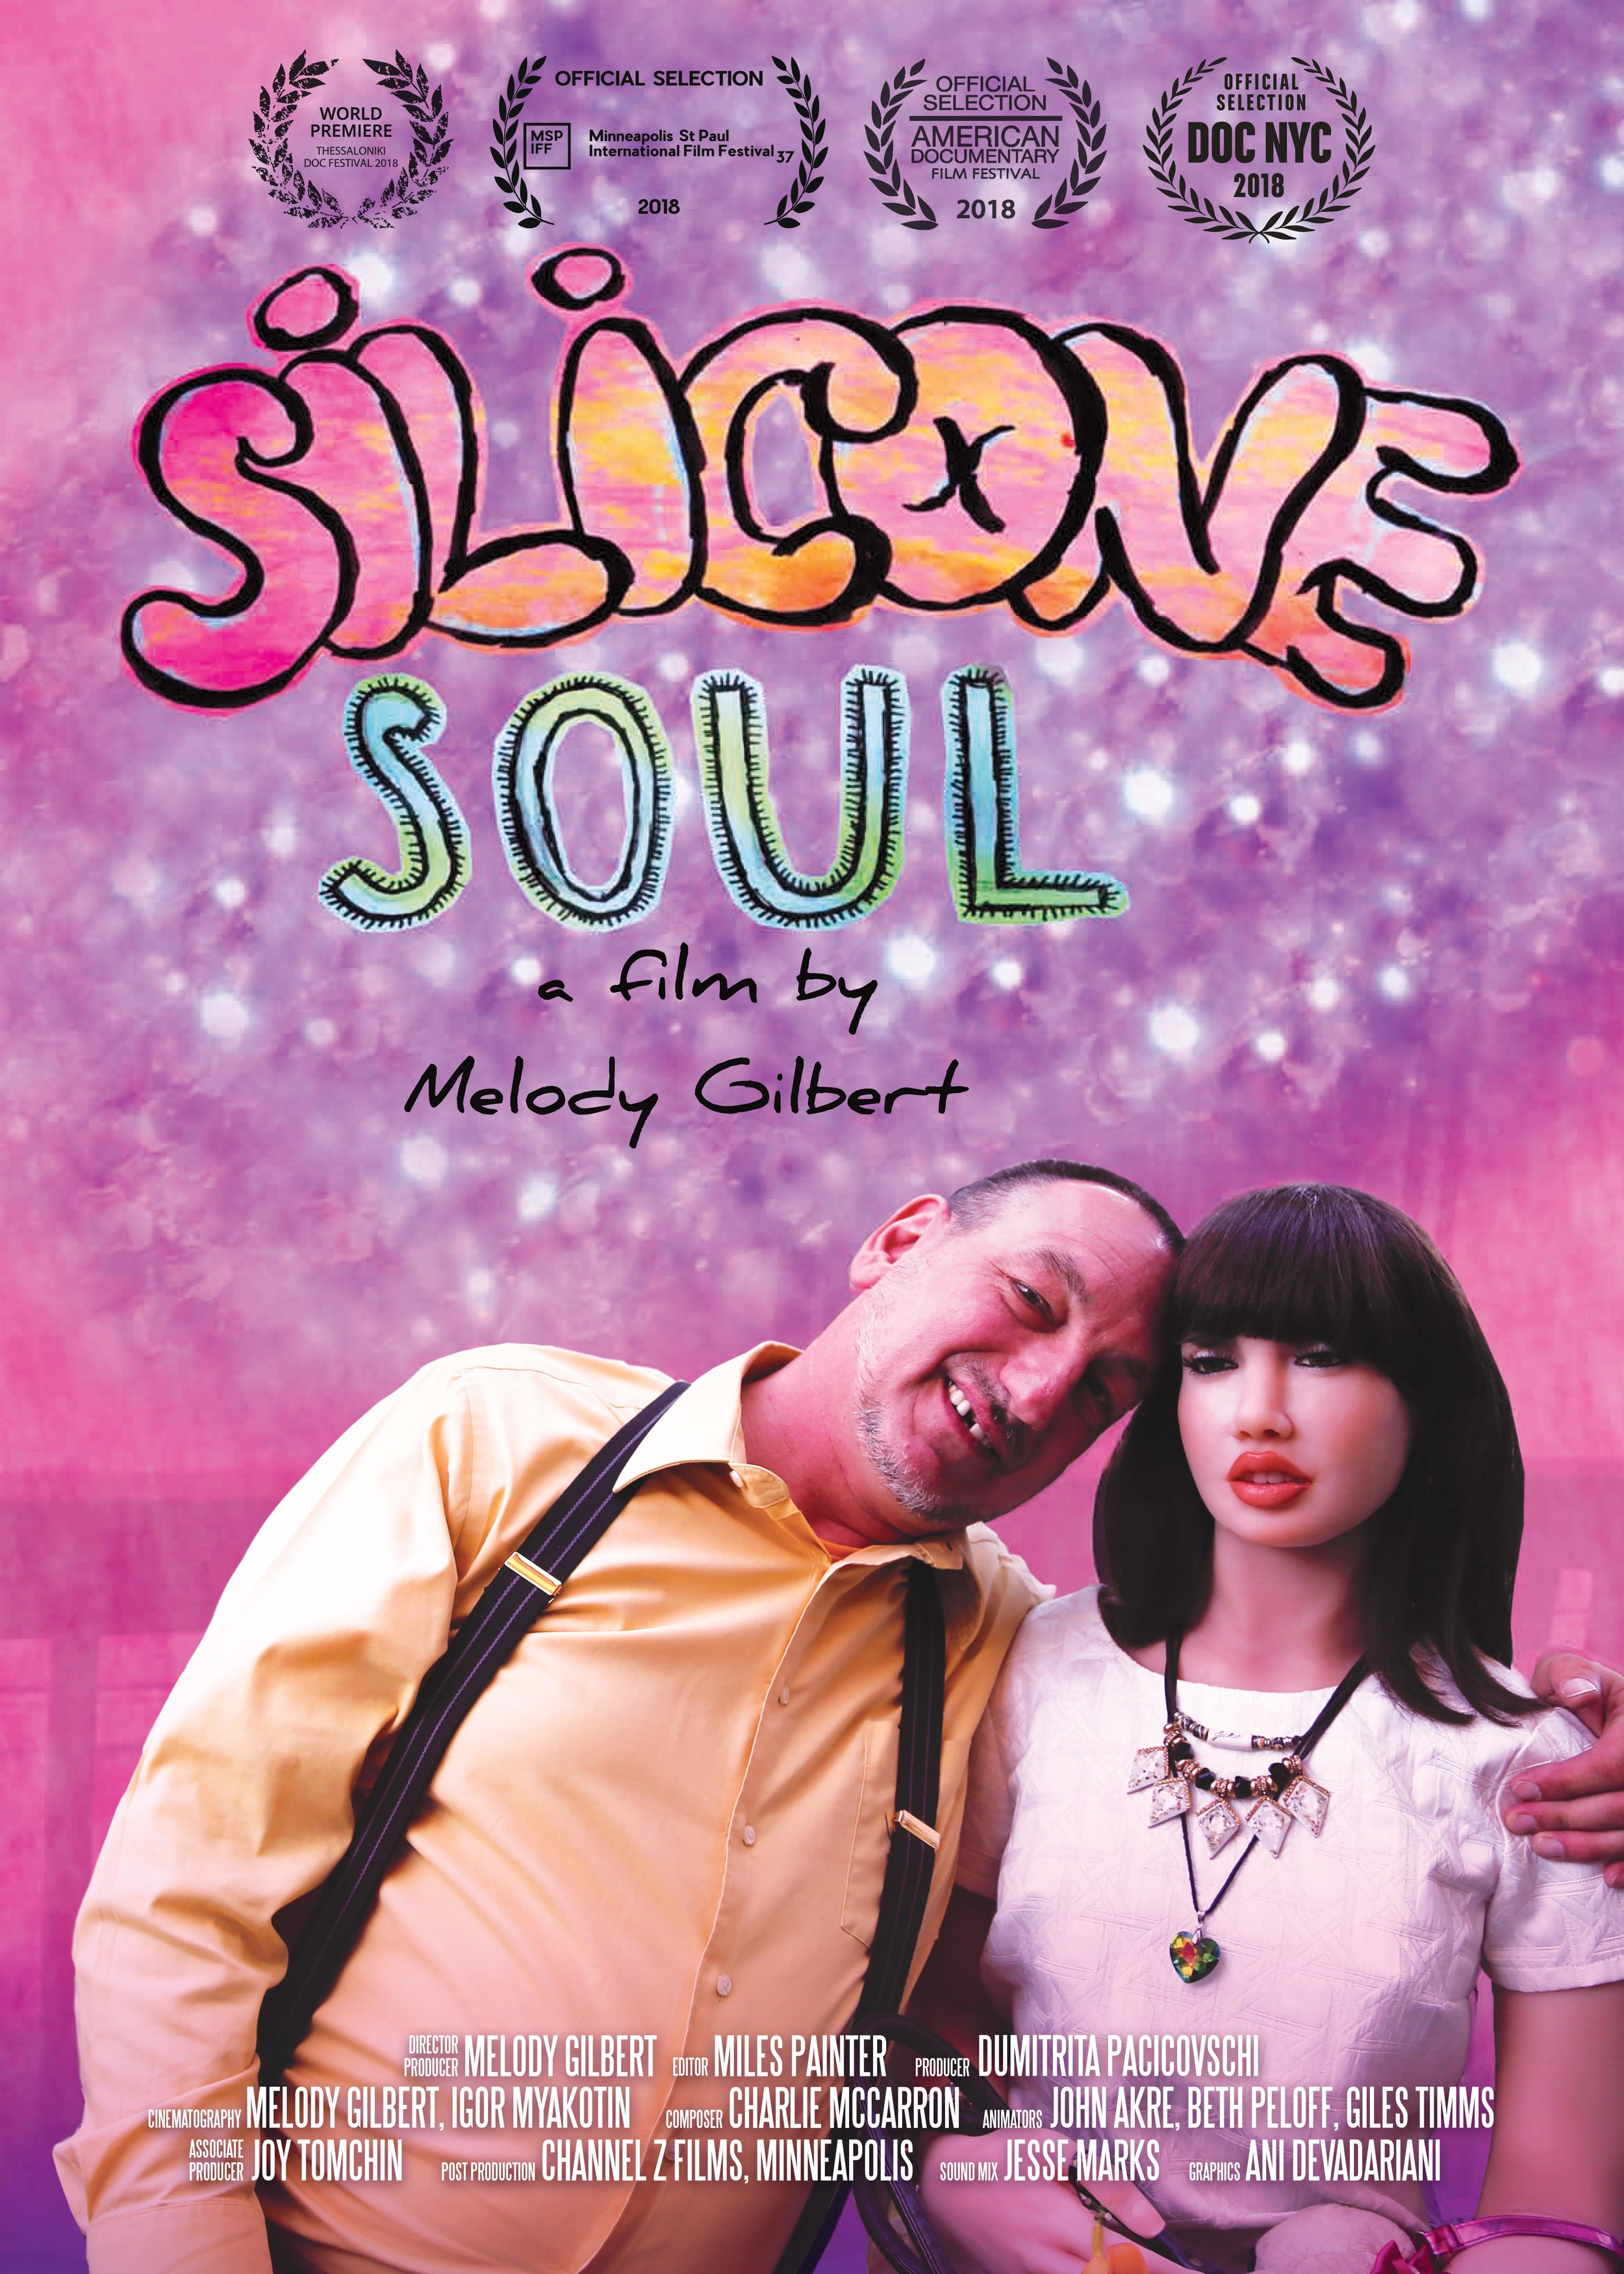 Silicone Soul - 2018, USA, 71 min,in EnglishSilicone Soul explores the emotional connection some people have to their lifelike synthetic companions and what that means for the future of human relationships. Ultimately, this is a film about love, loneliness, secrets and, perhaps, acceptance. The bonds shown are diverse and layered: from romantic relationships, to friendships, to a recreation of the love between mother and child. Silicone Soul does not allow for its subjects to be easily labeled or judged. Instead, the film is a collection of resoundingly human stories that reflect universal themes—the desire for love, compassion and communication. Who are we to judge who…or what…people choose to love? More about the film here.